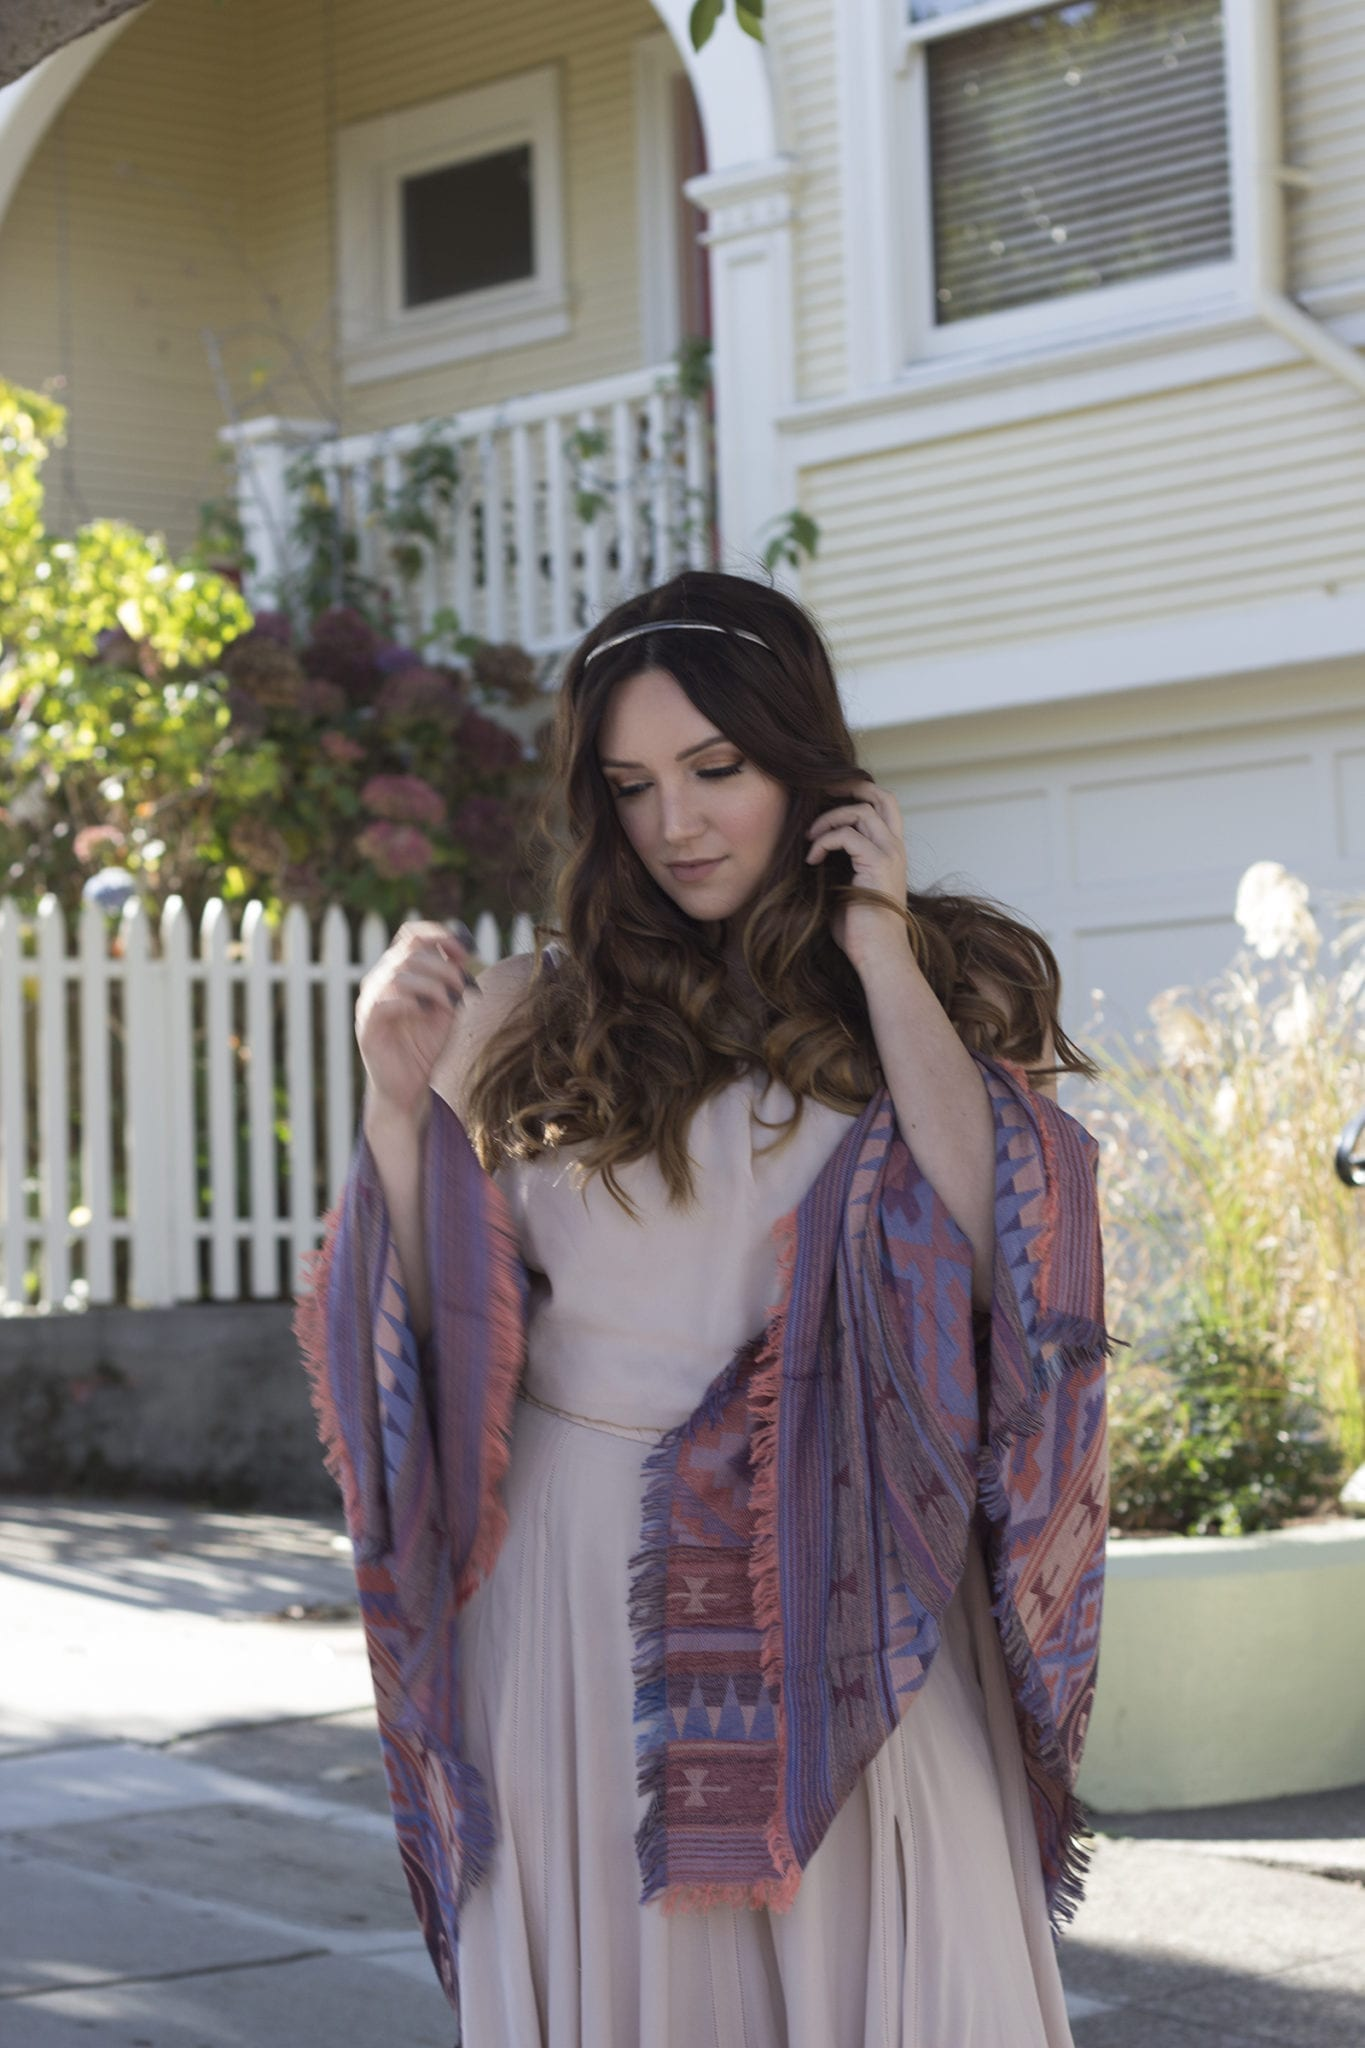 boho glam outfit